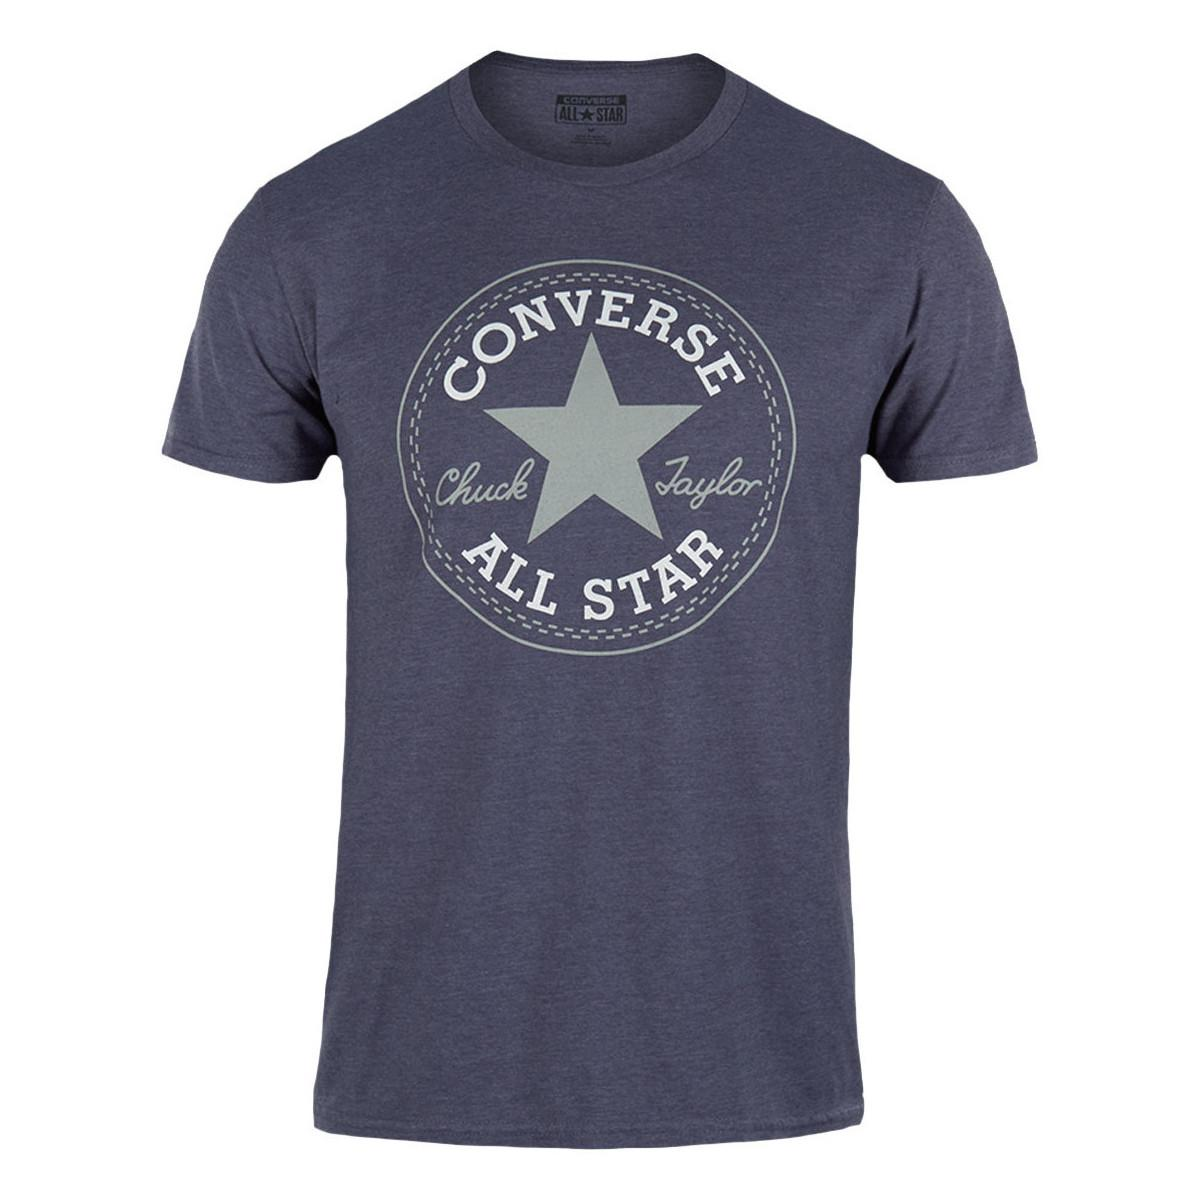 2036c5589253 Converse Mens Athletic Navy Heather Crew Tee All Star Chuck Taylor T ...